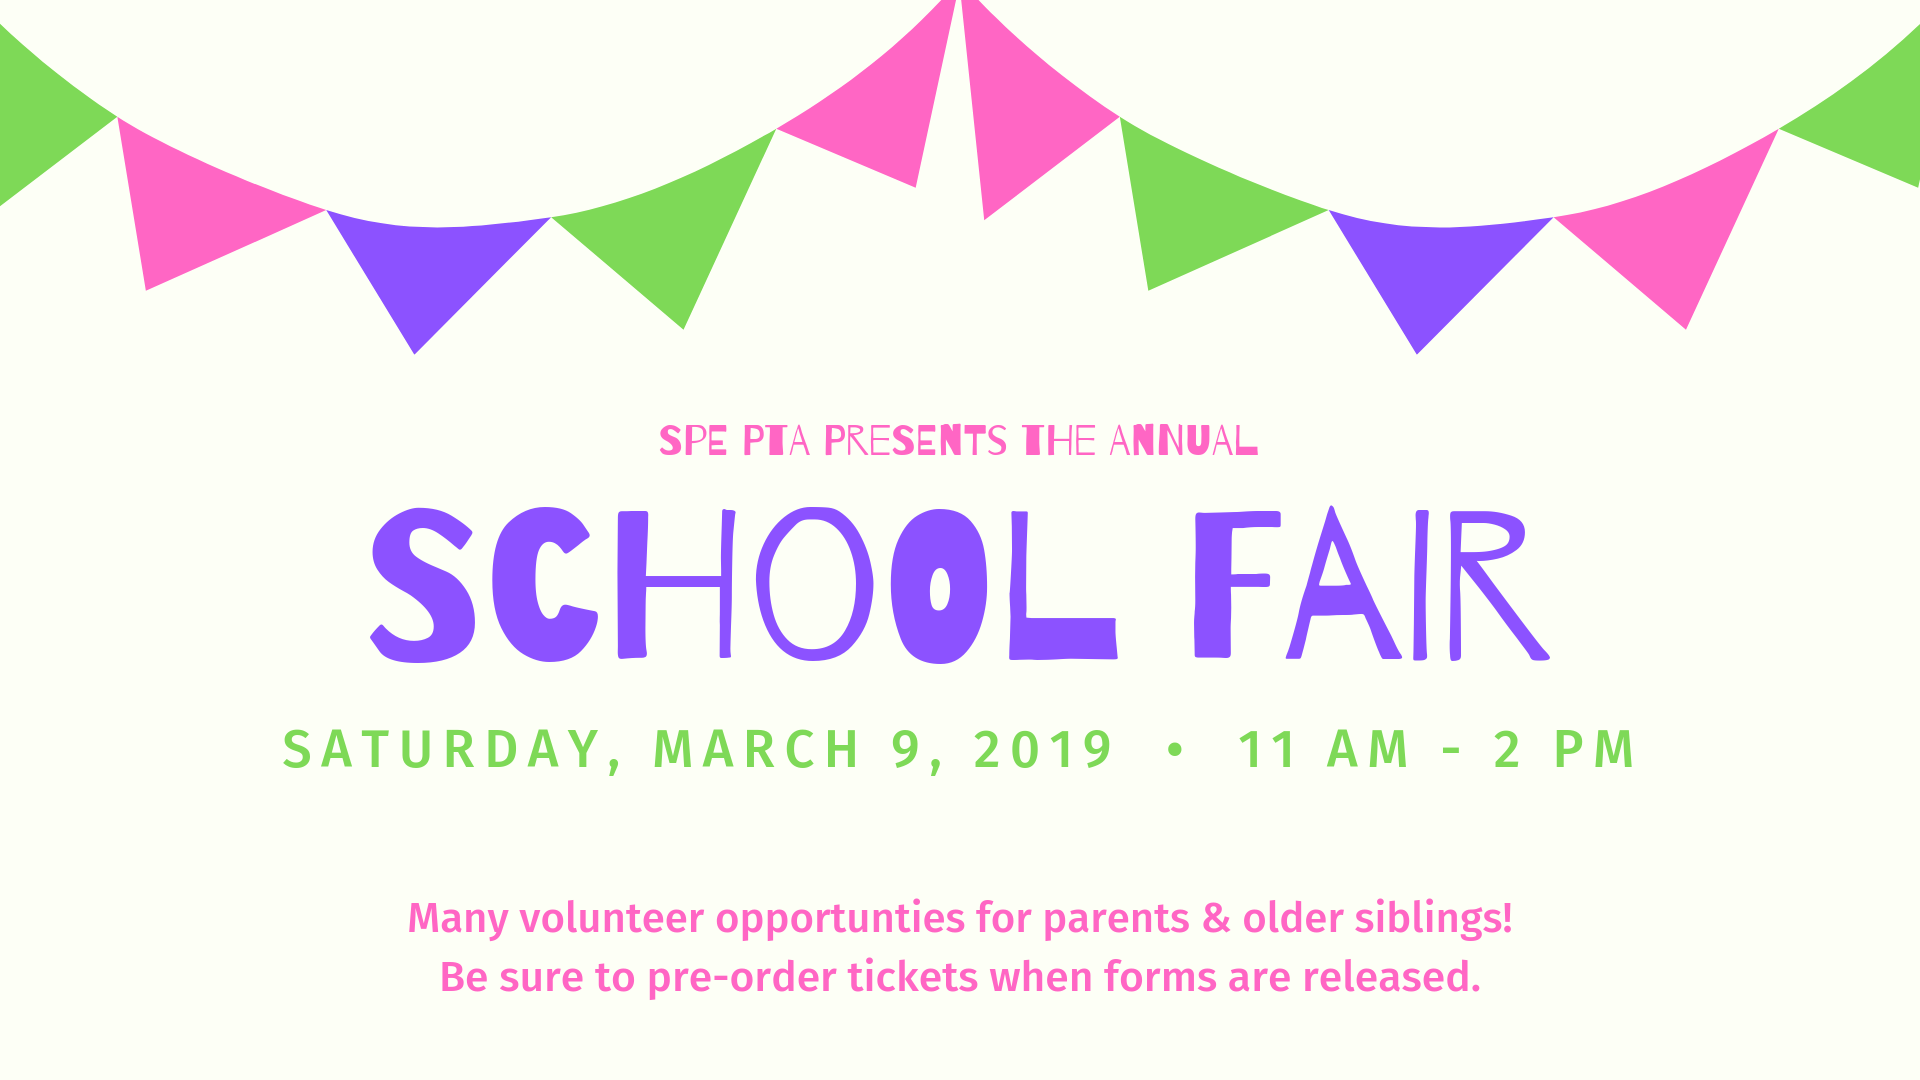 Volunteer for School Fair